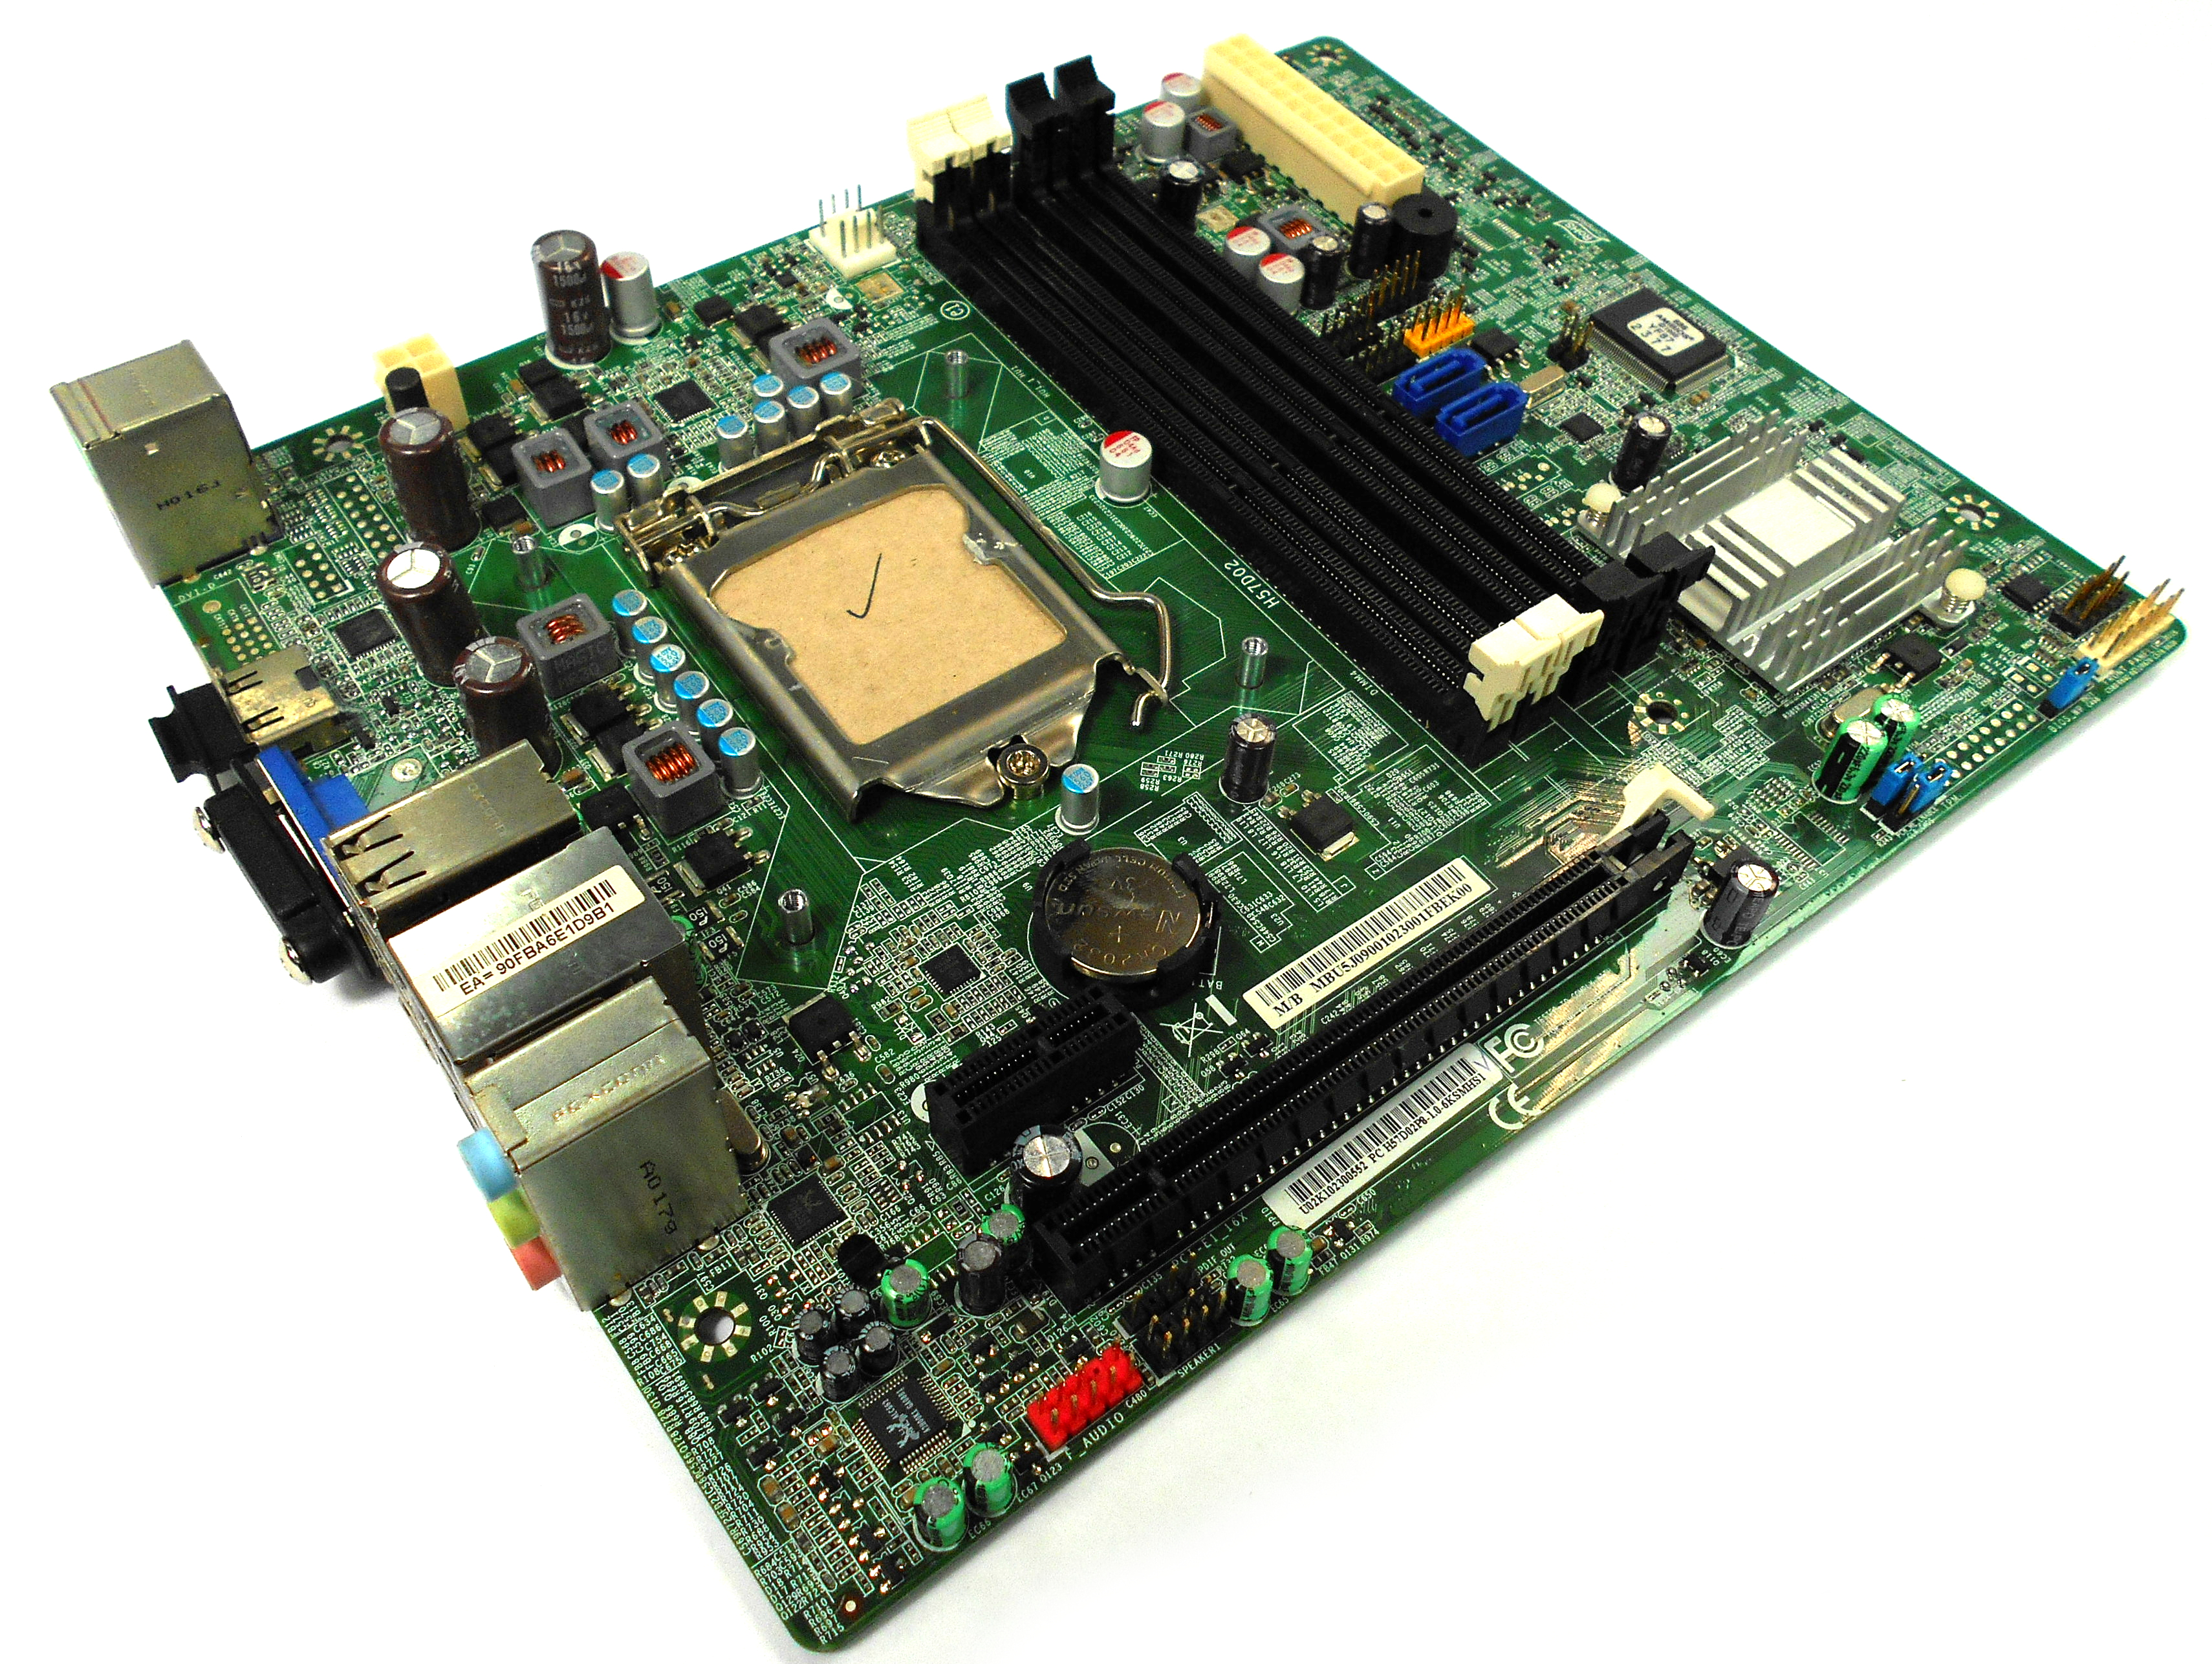 H57D02 Packard Bell oneTwo L5851 Motherboard - MB.U5J09.001